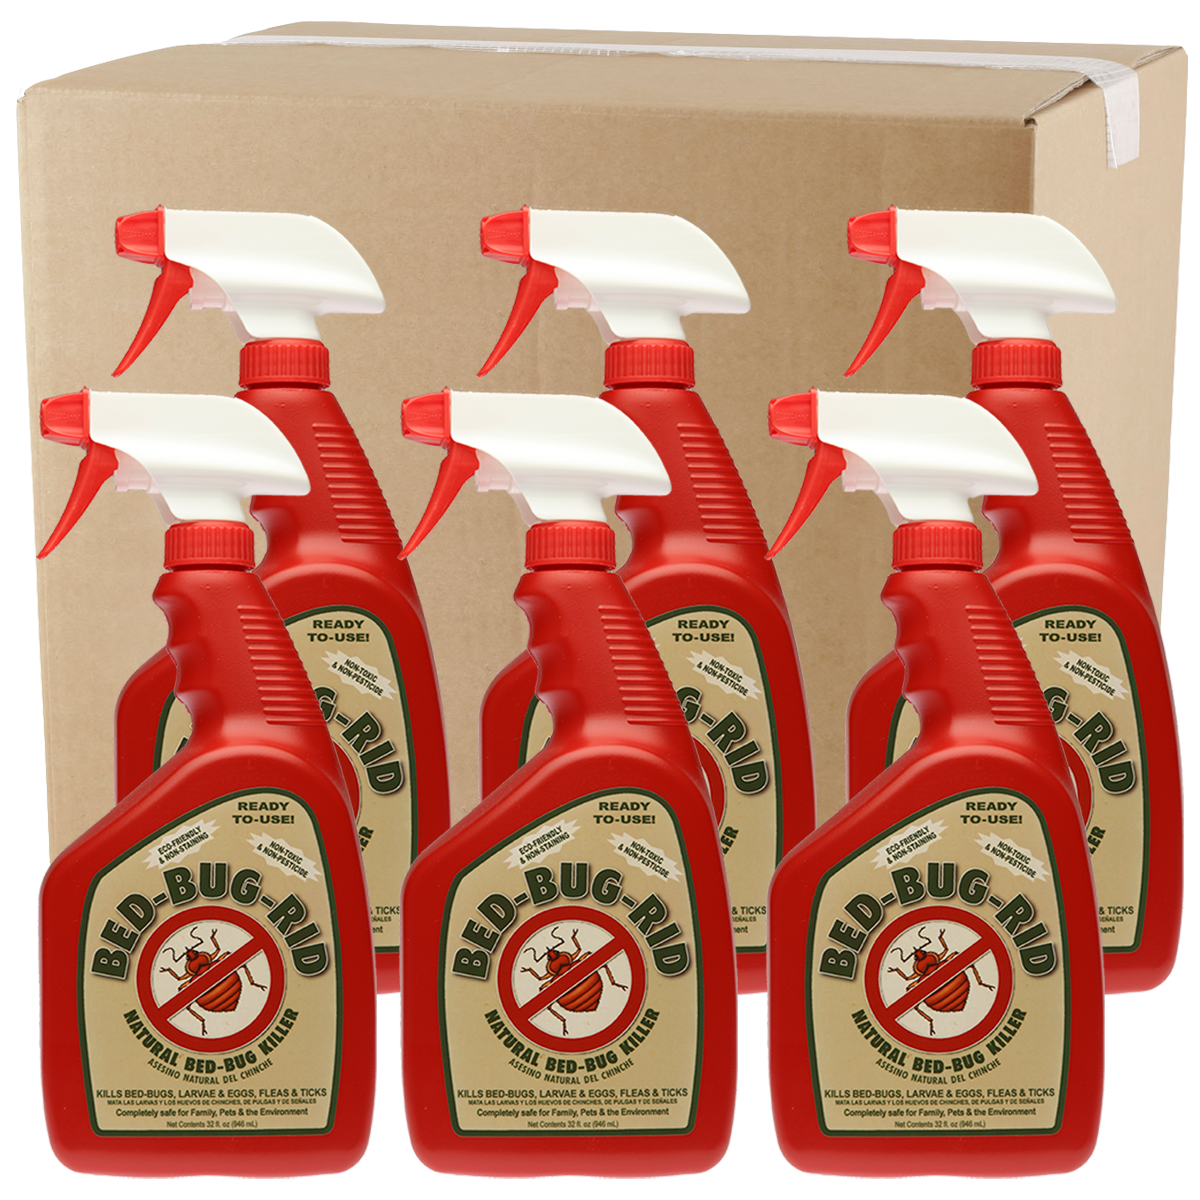 Wholesale Bed-Bug-Rid 32oz Spray Case